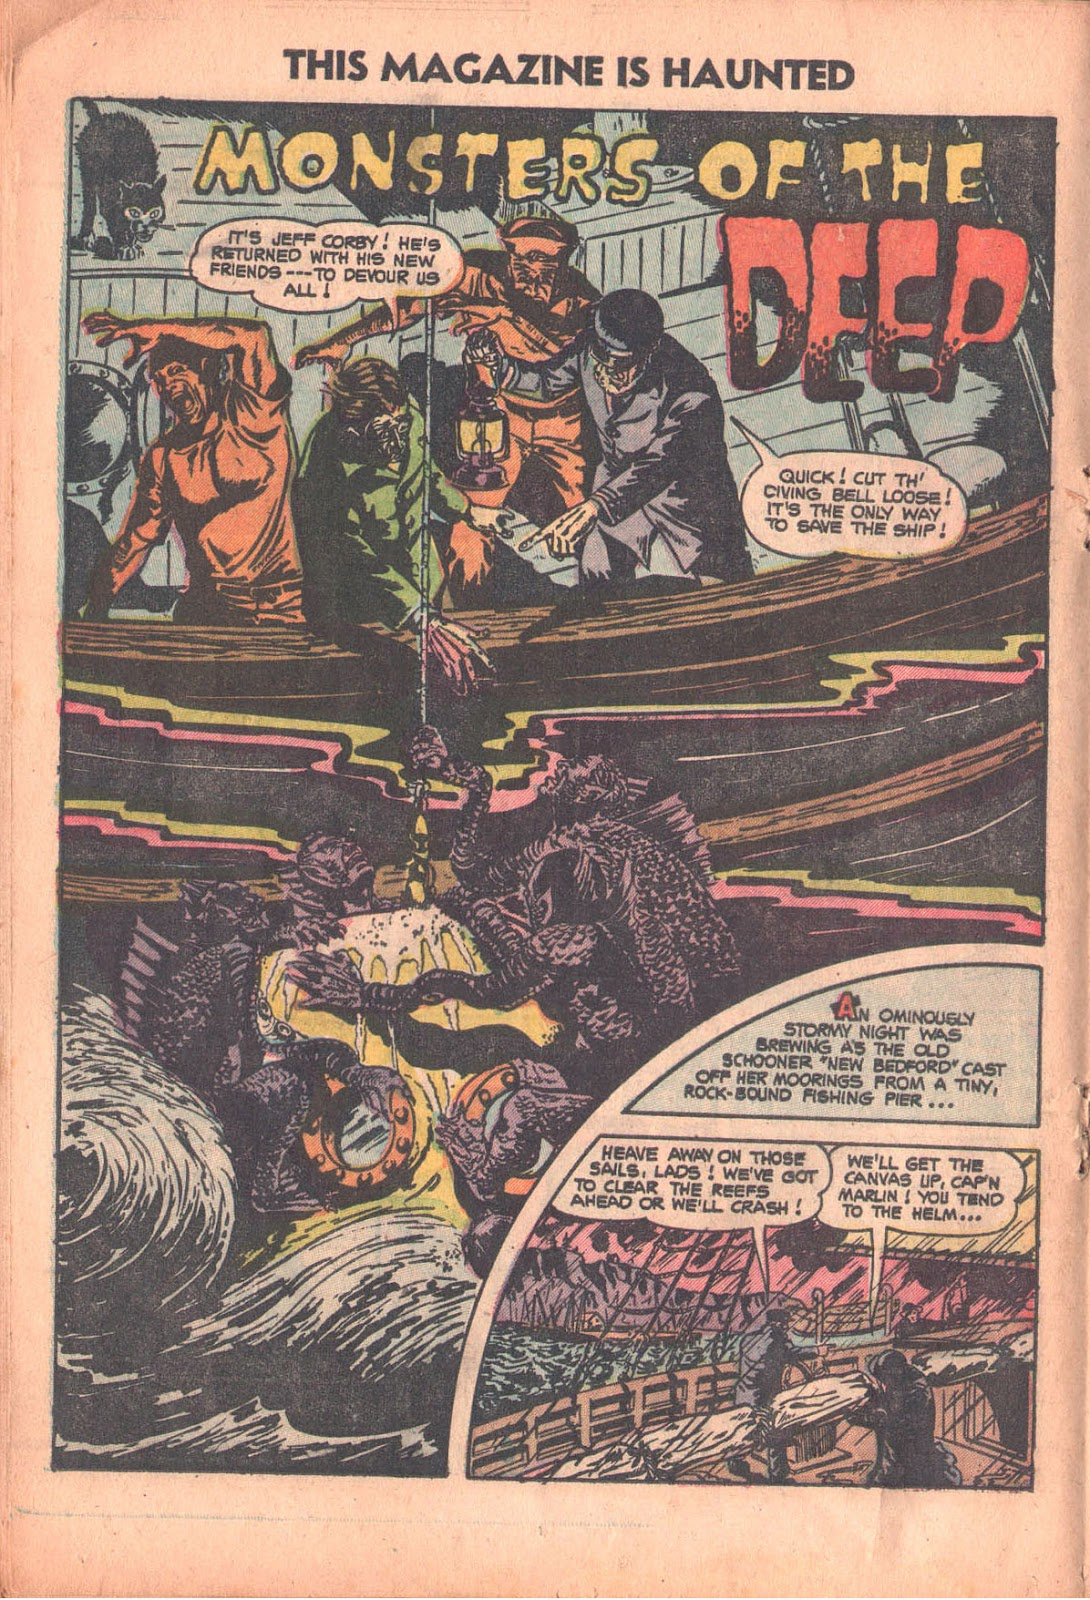 Read online This Magazine Is Haunted comic -  Issue #15 - 18